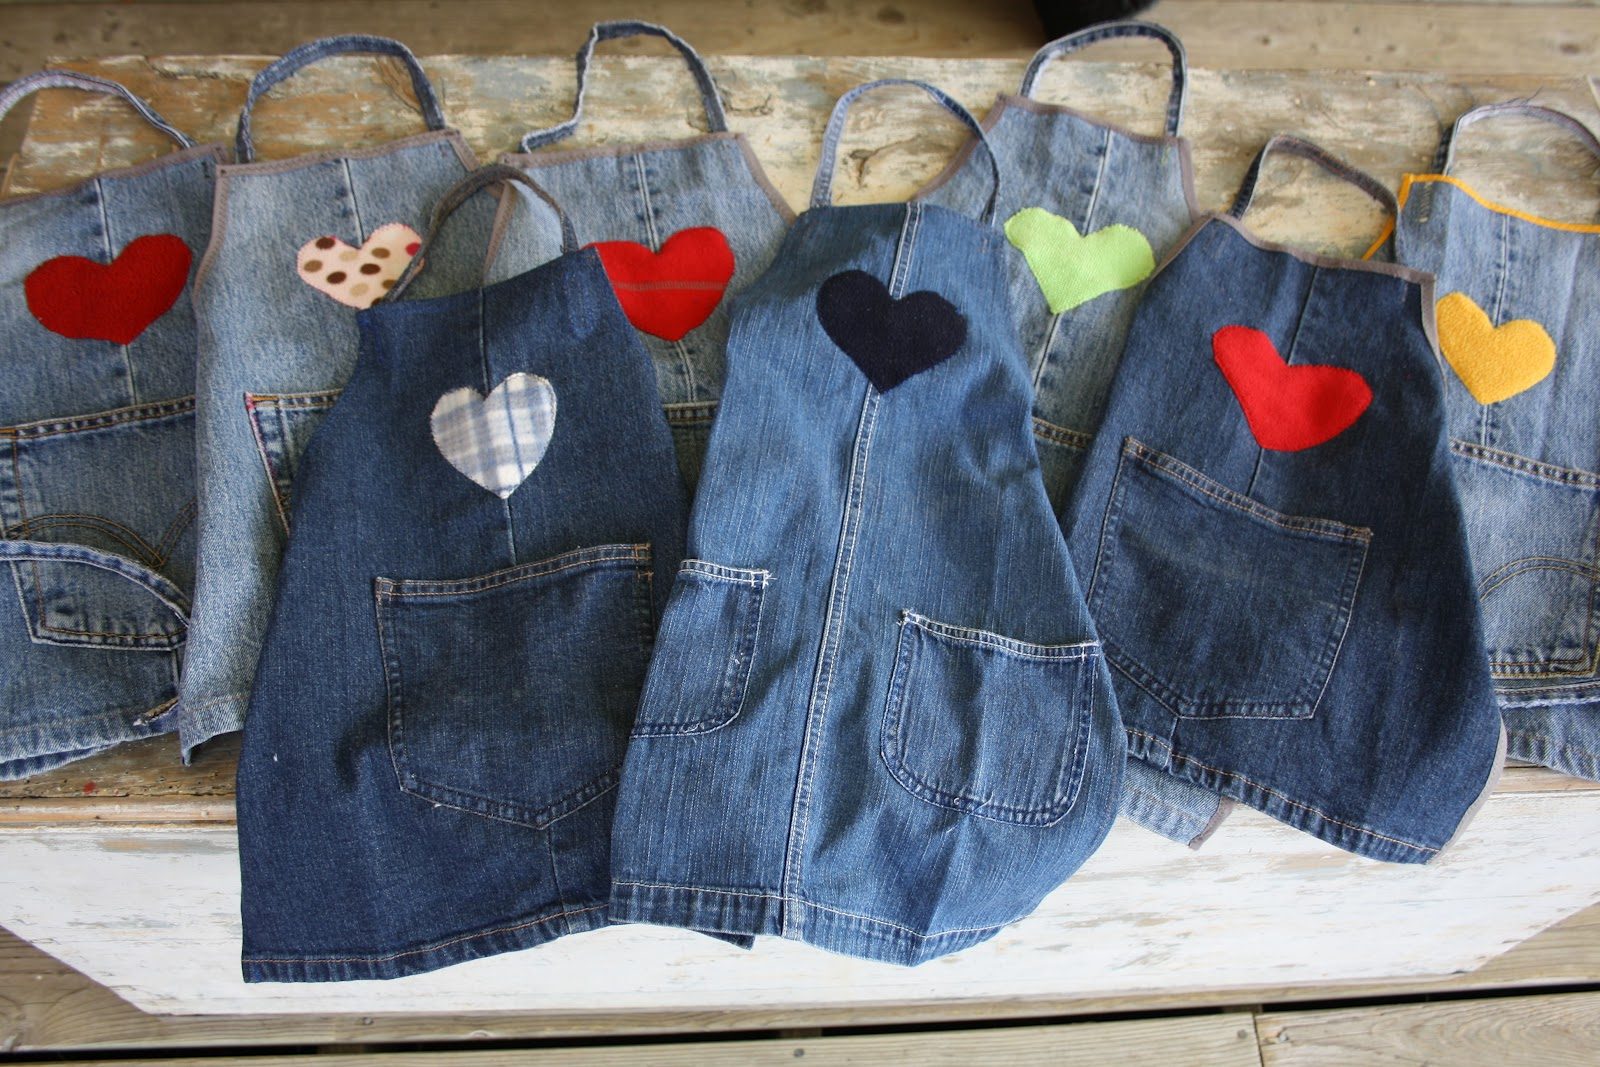 Kindred spirits sisters upcycling denim projects for Jeans upcycling ideas